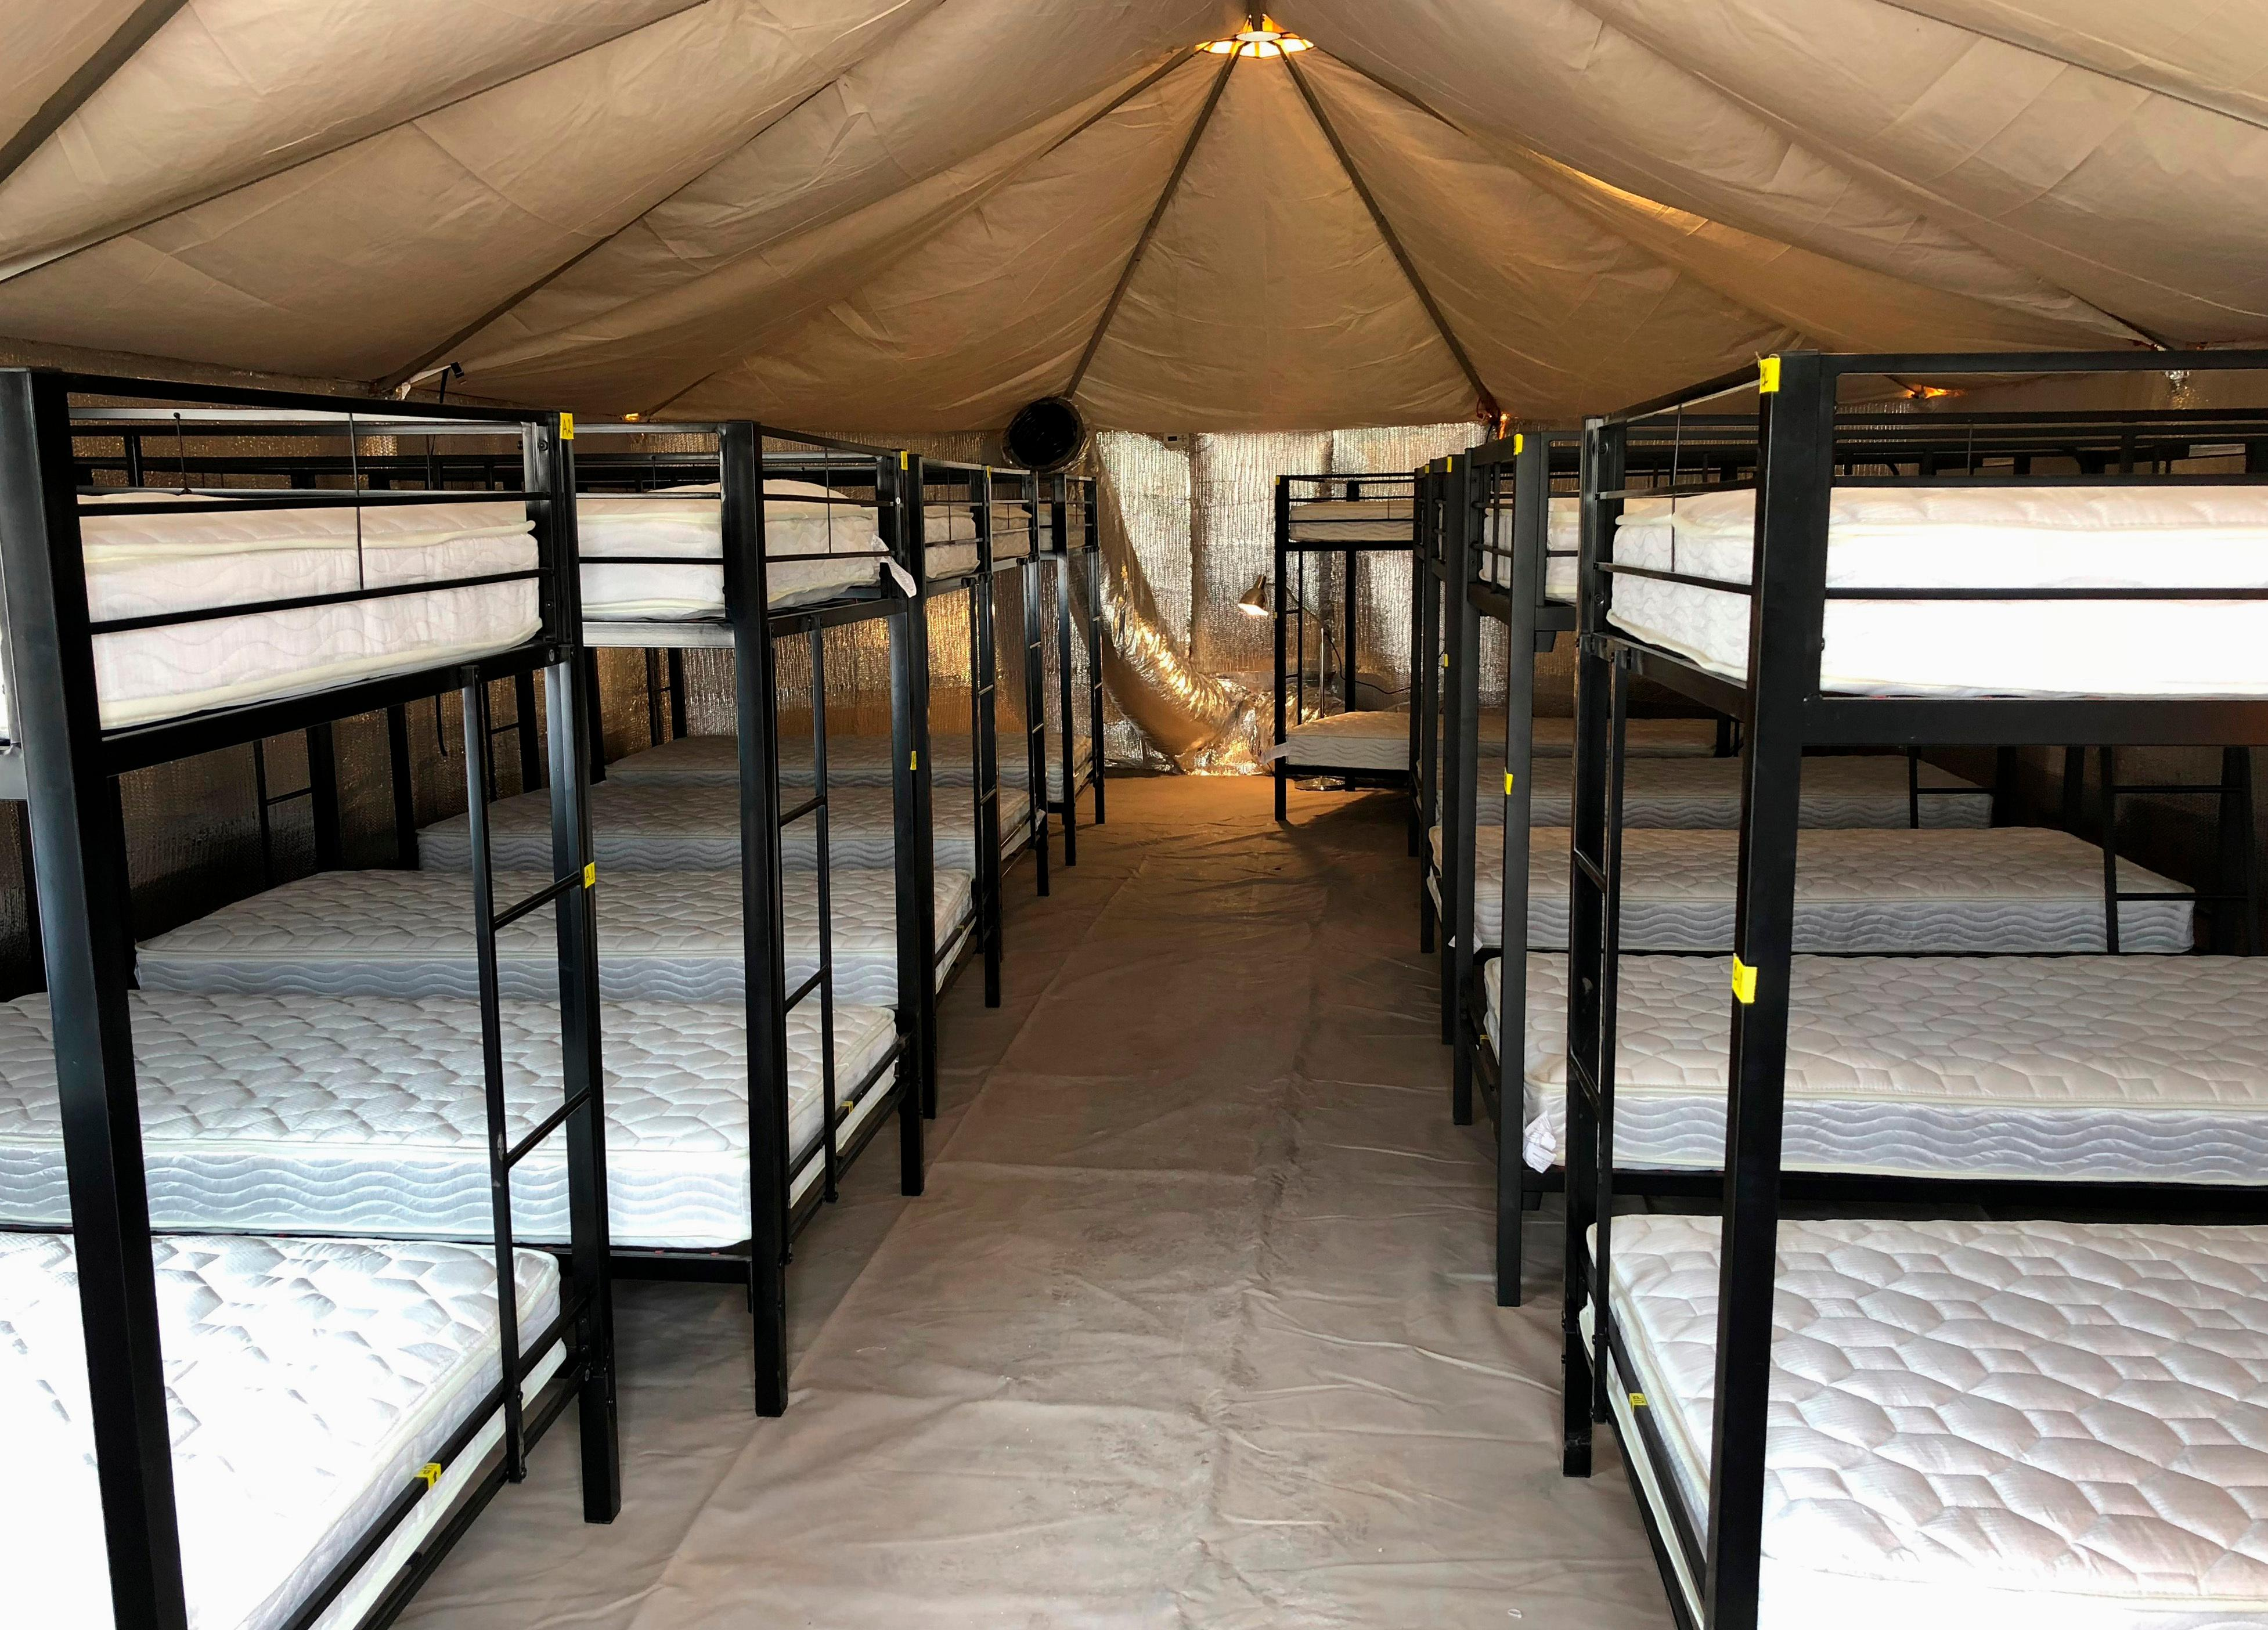 This undated photo provided by the U.S. Department of Health and Human Services' Administration for Children and Families shows beds at the shelter used to house unaccompanied foreign children in Tornillo, Texas. (HHS' Administration for Children and Families via AP)